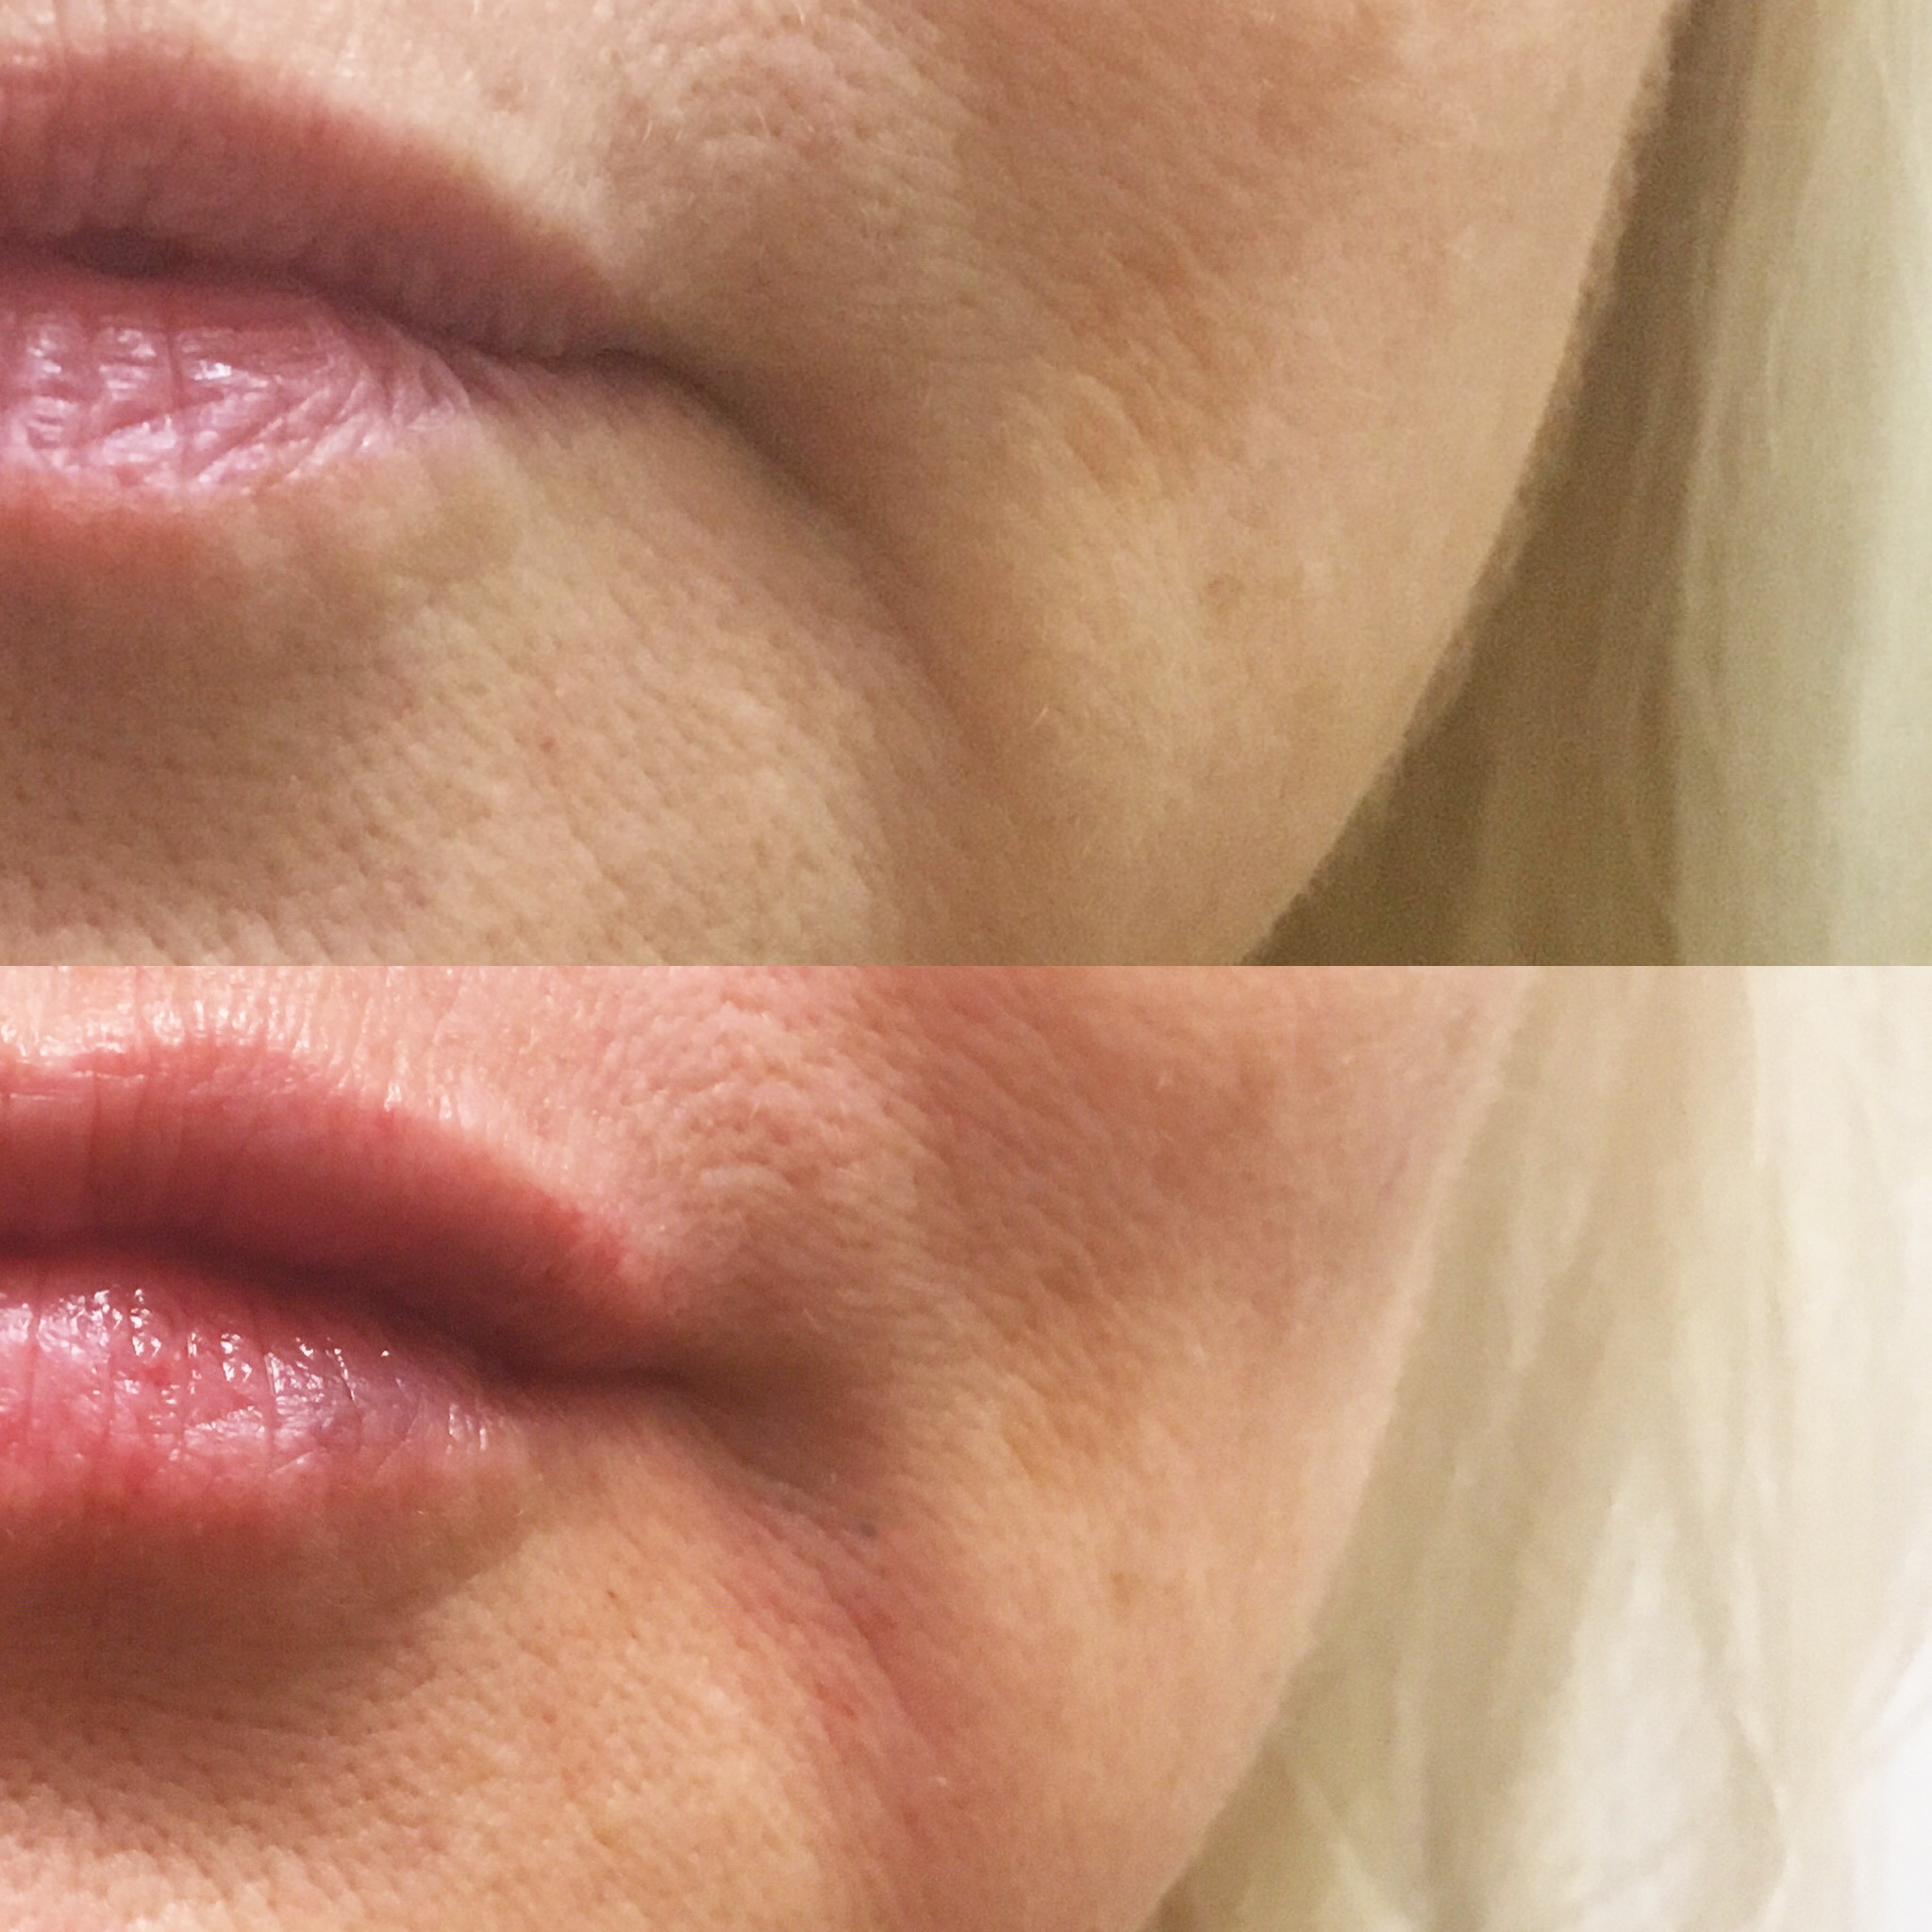 Juvederm to Soften Lines